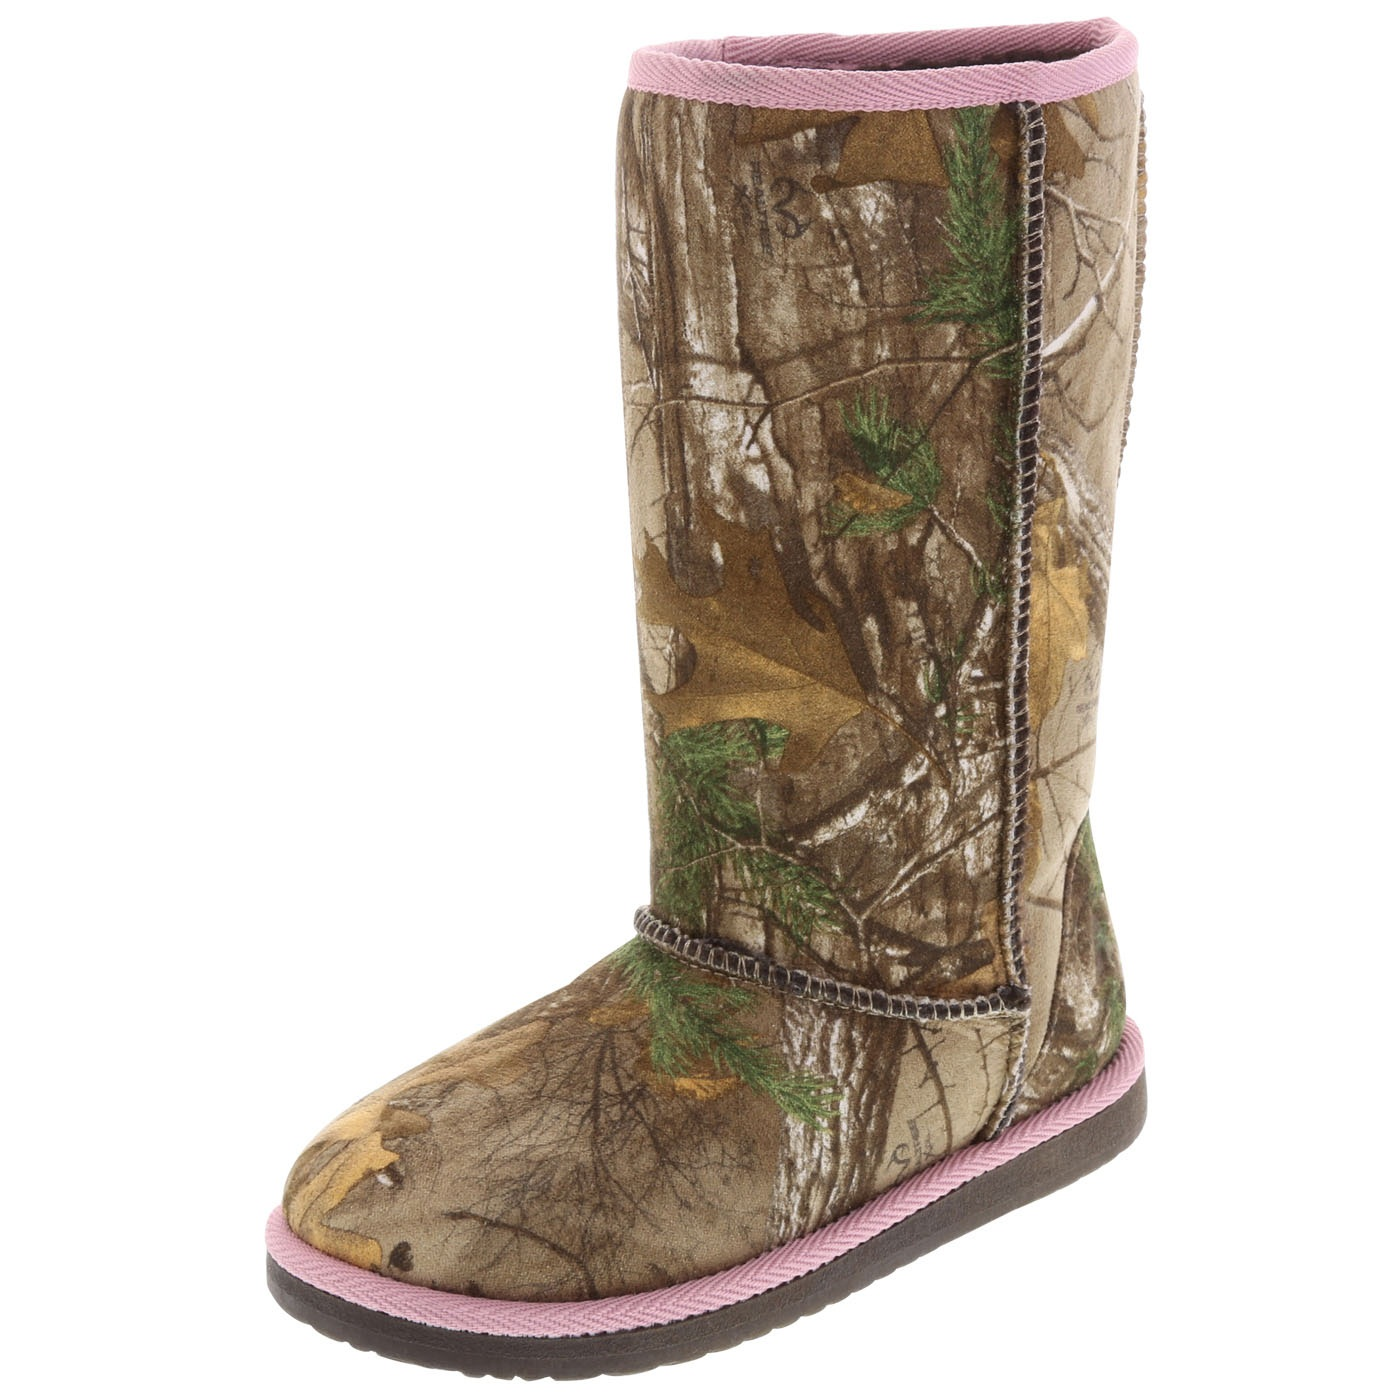 Payless Camo Shoes for Women and Girls | OutdoorHub